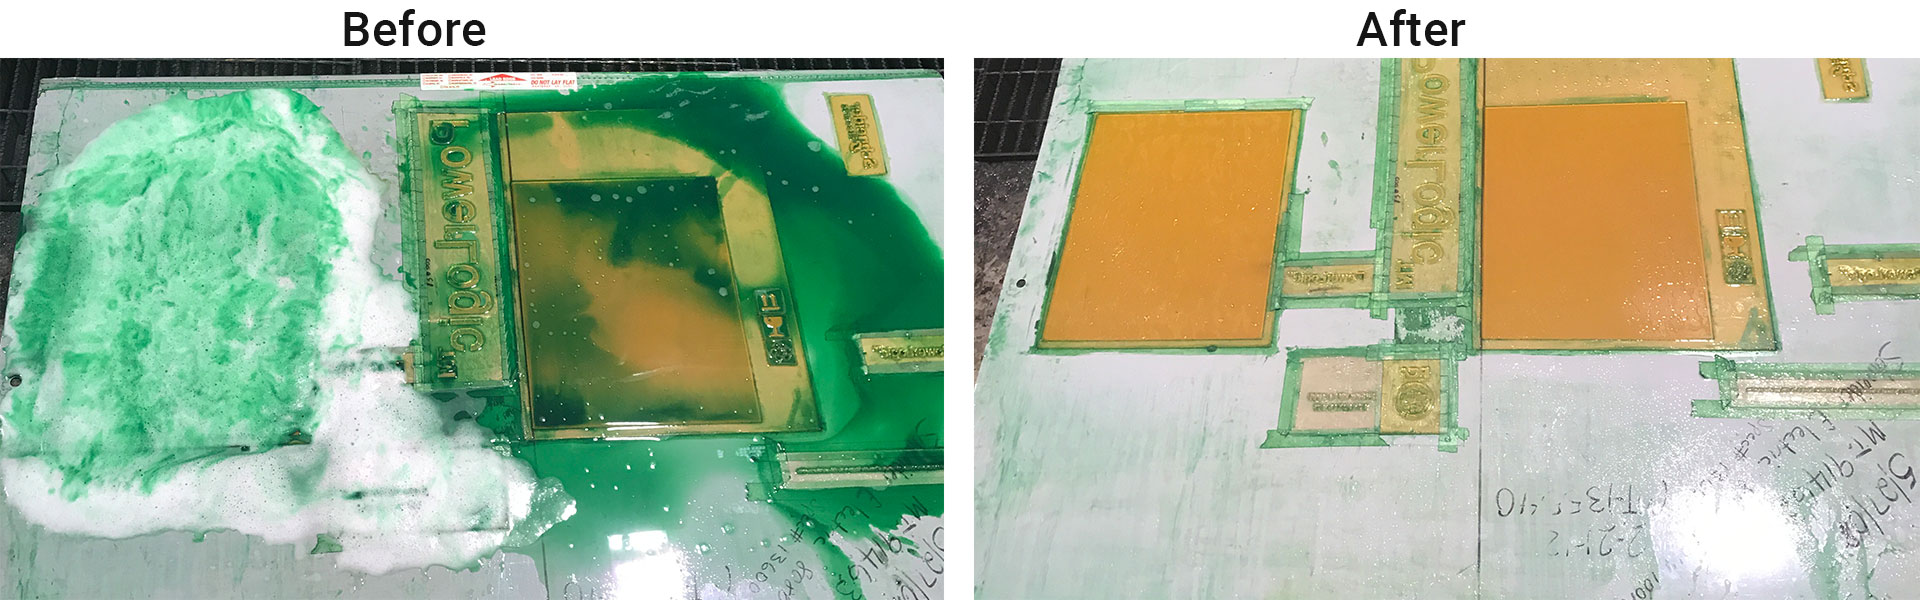 printing blanket before and after system cleaning